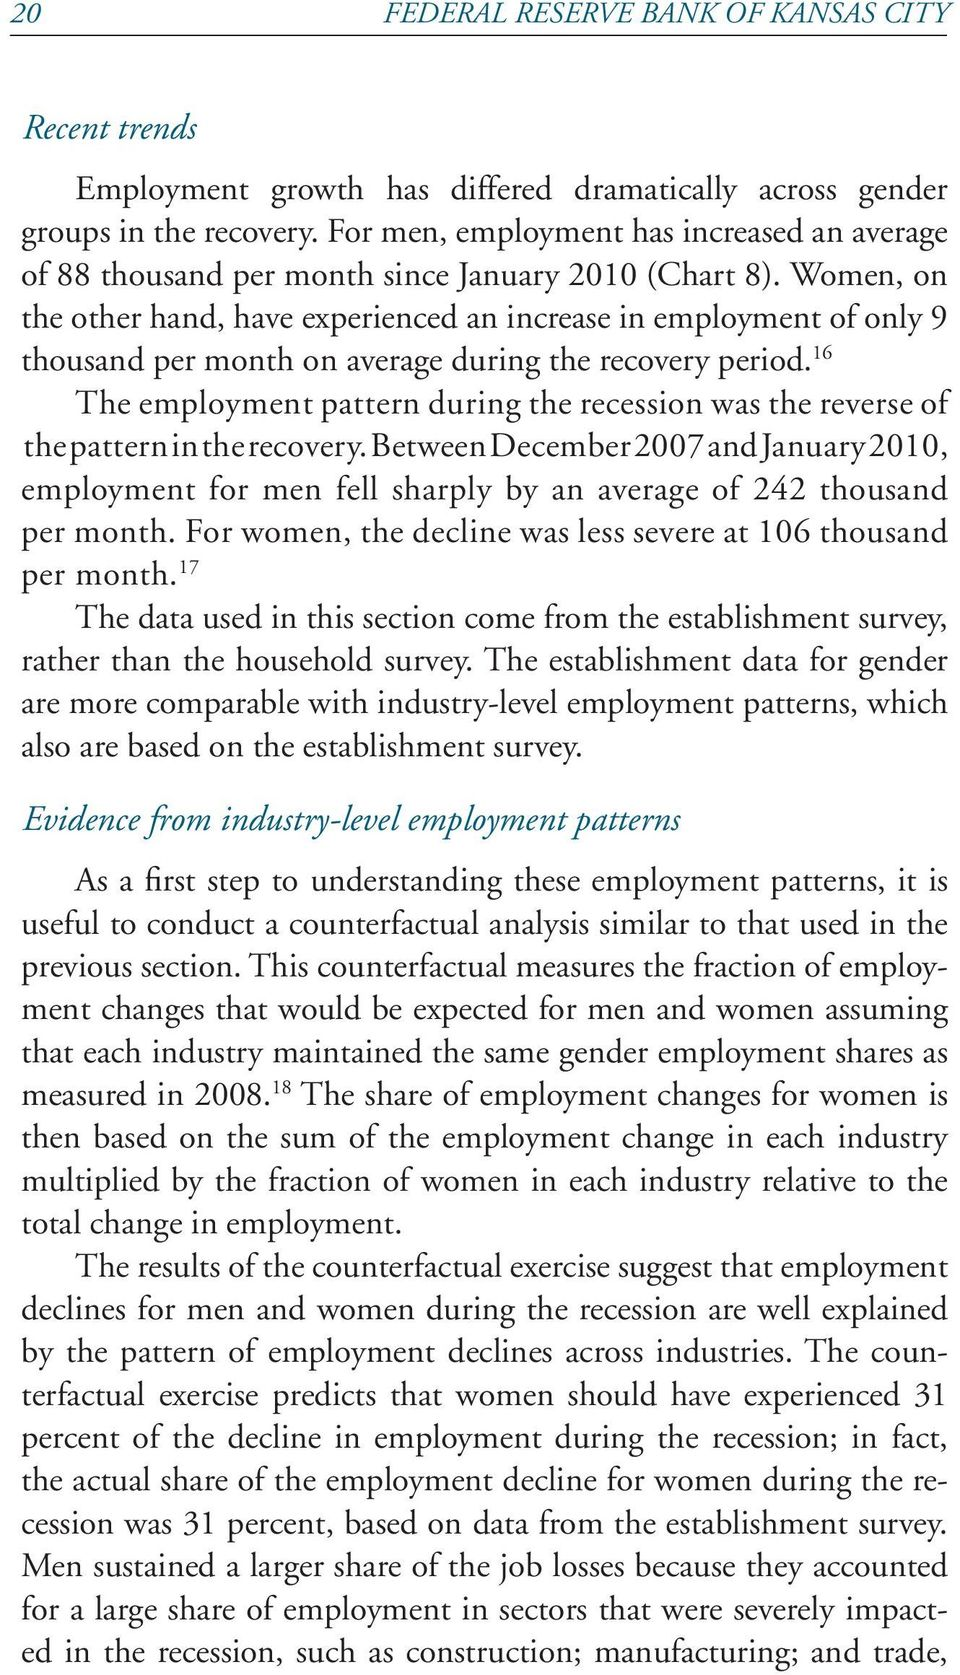 Women, on the other hand, have experienced an increase in employment of only 9 thousand per month on average during the recovery period.